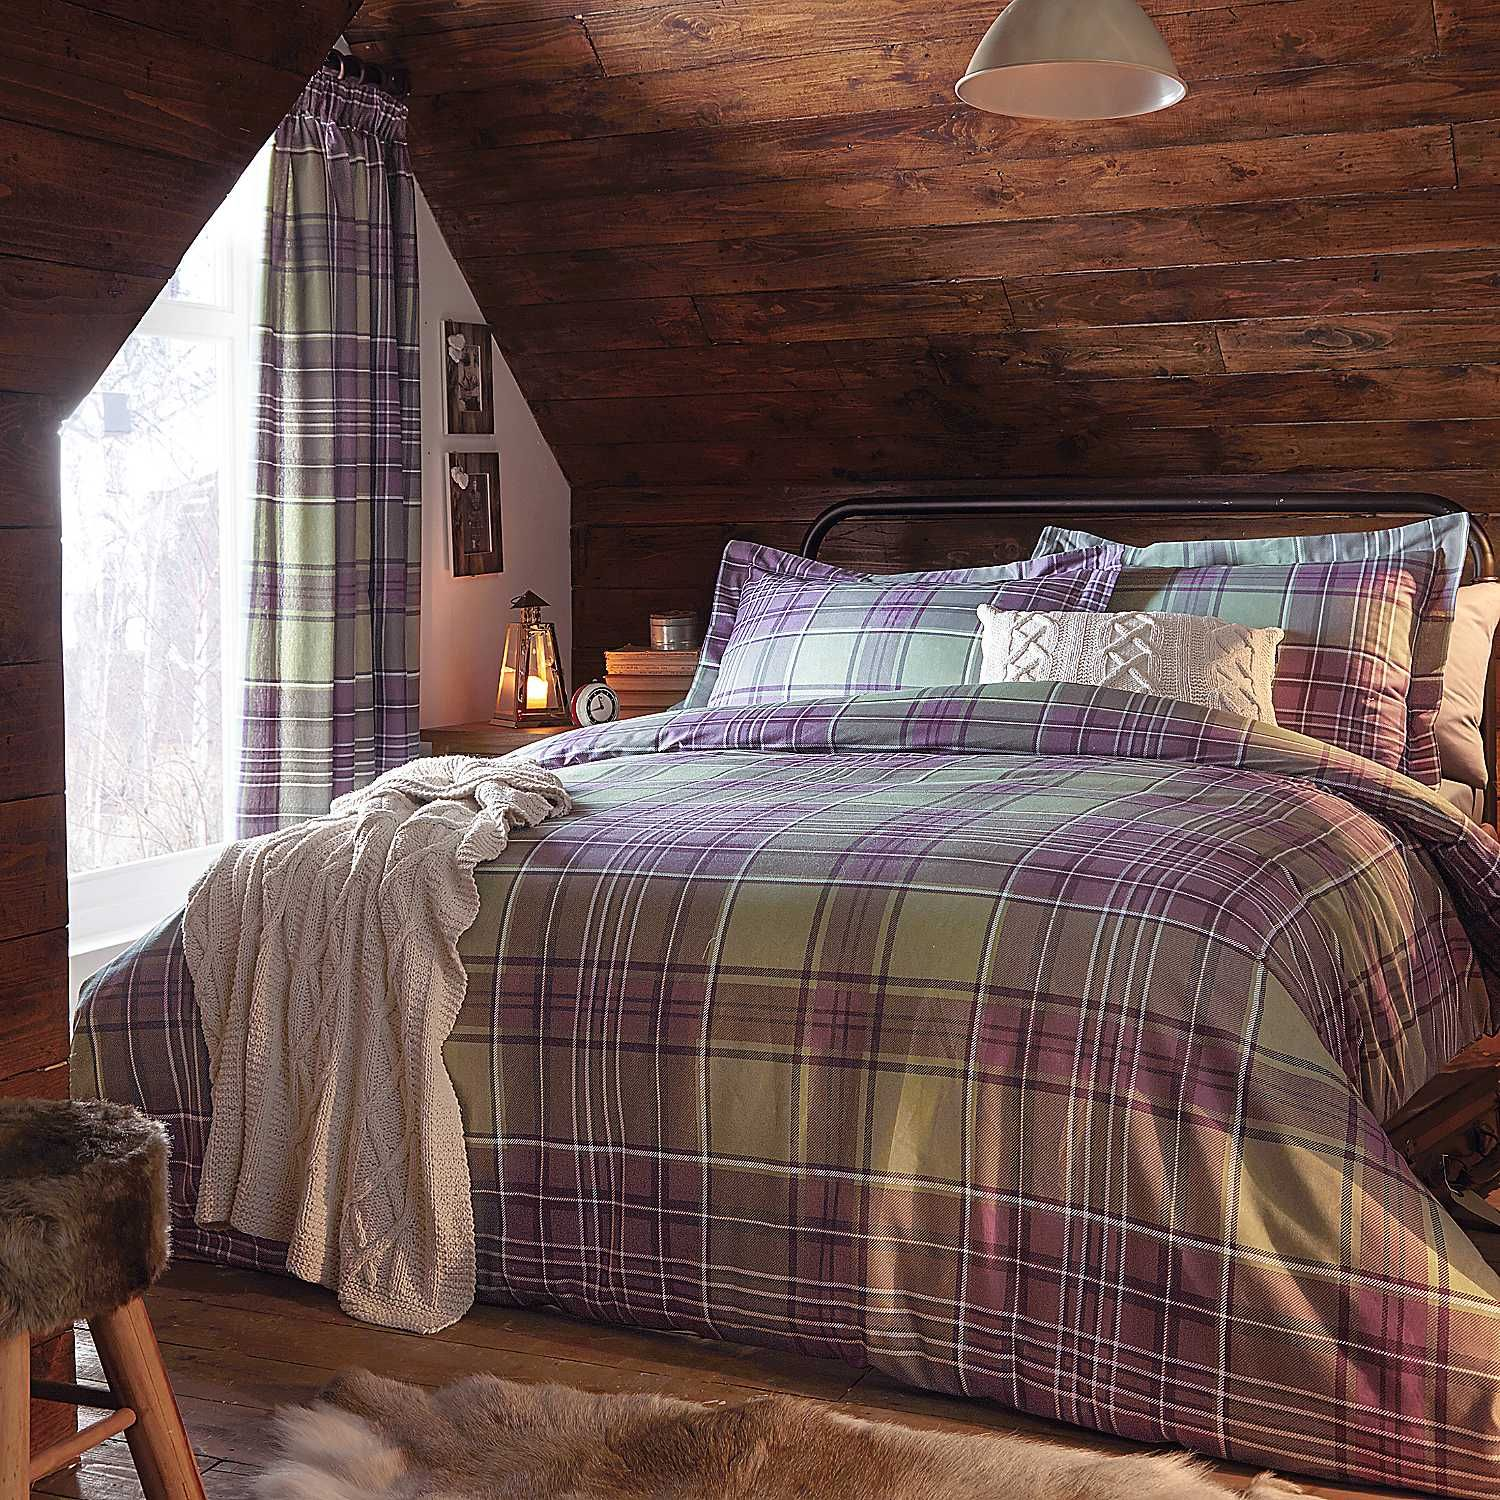 Highlands Green Tartan Duvet Cover and Oxford Pillowcase Set | Follow one of the key trends this season with our new and exclusive Highlands tartan range, available in winter warm colours. #Style #Home #Bedding #Bed #Bedroom #Lifestyle #Kaleidoscope www.kaleidoscope.co.uk